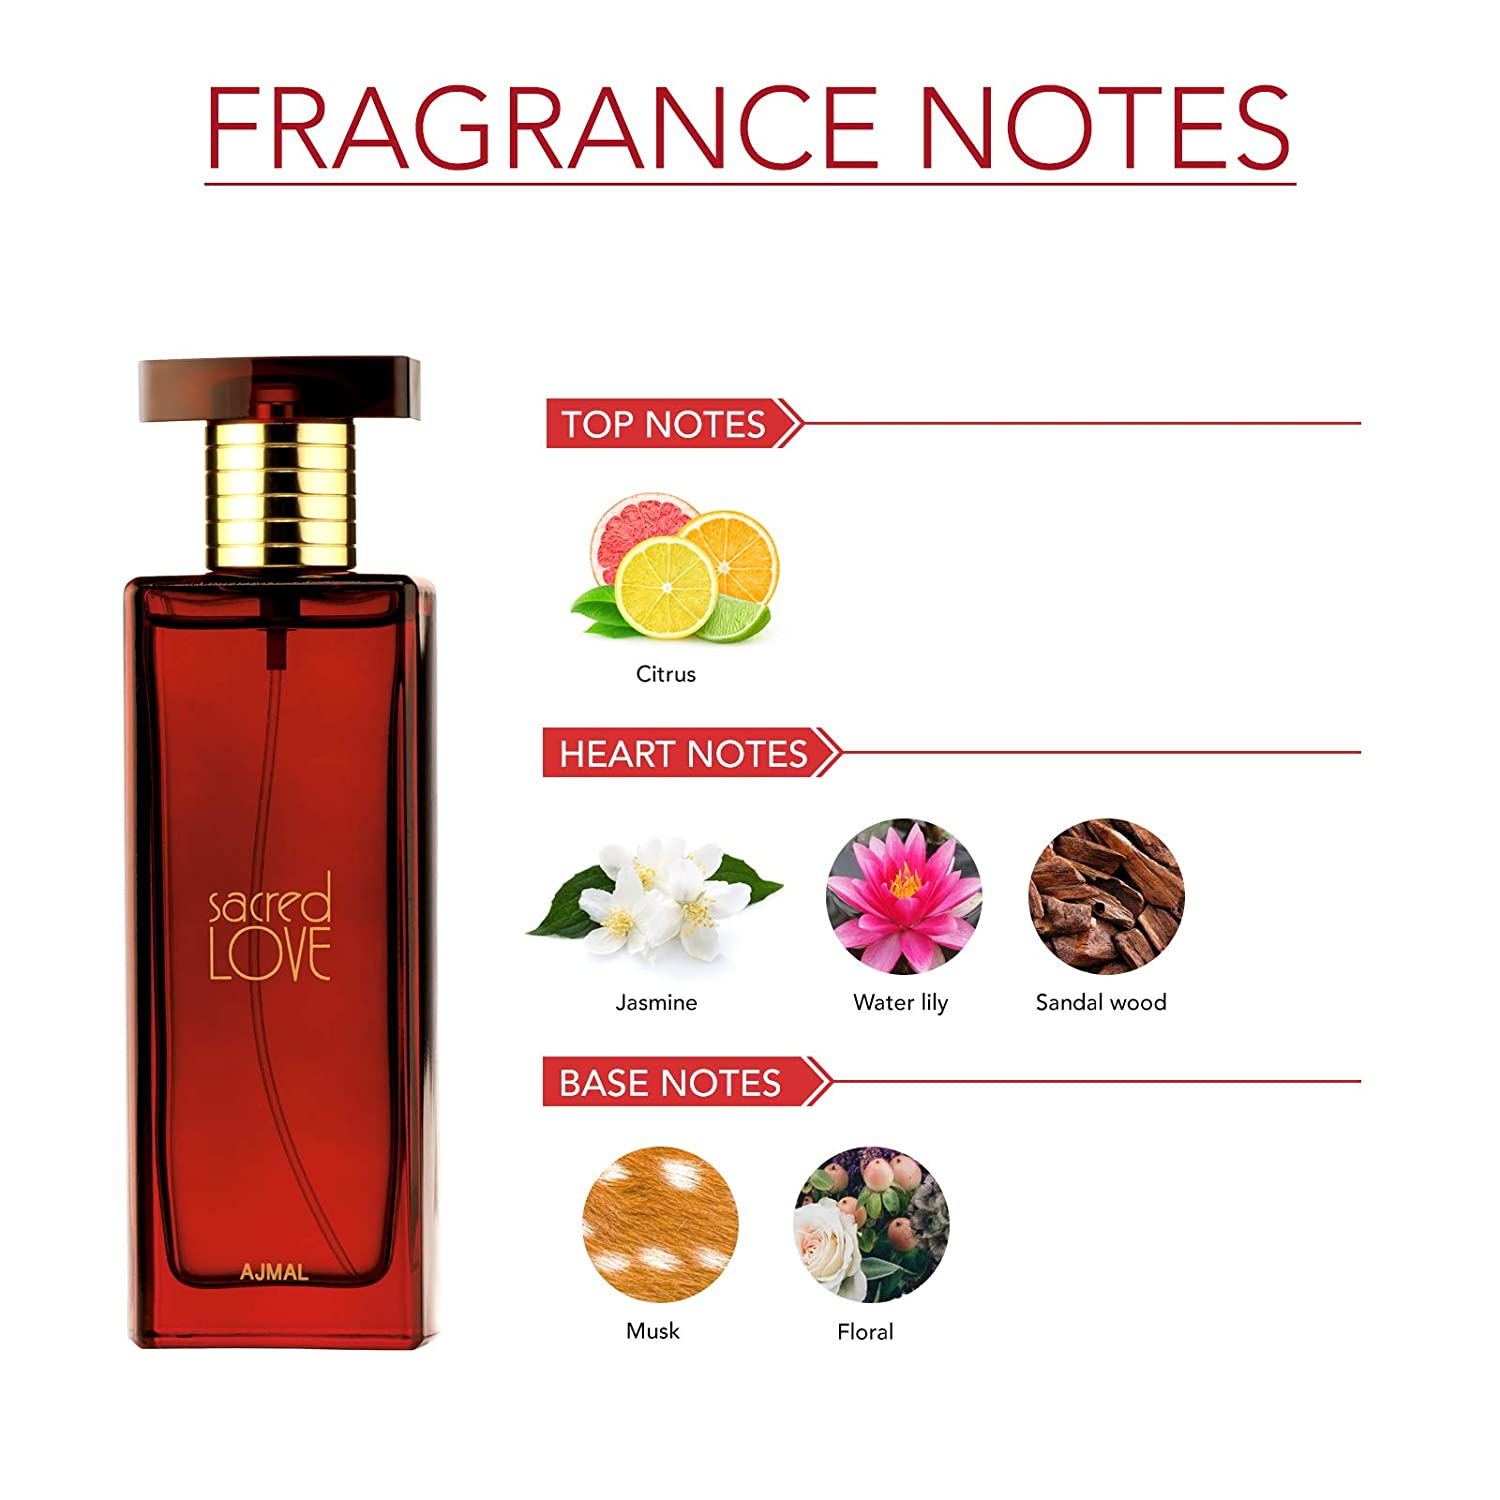 Ajmal Sacred Love EDP 50ml floral perfume for Women- Best Perfume under 1000